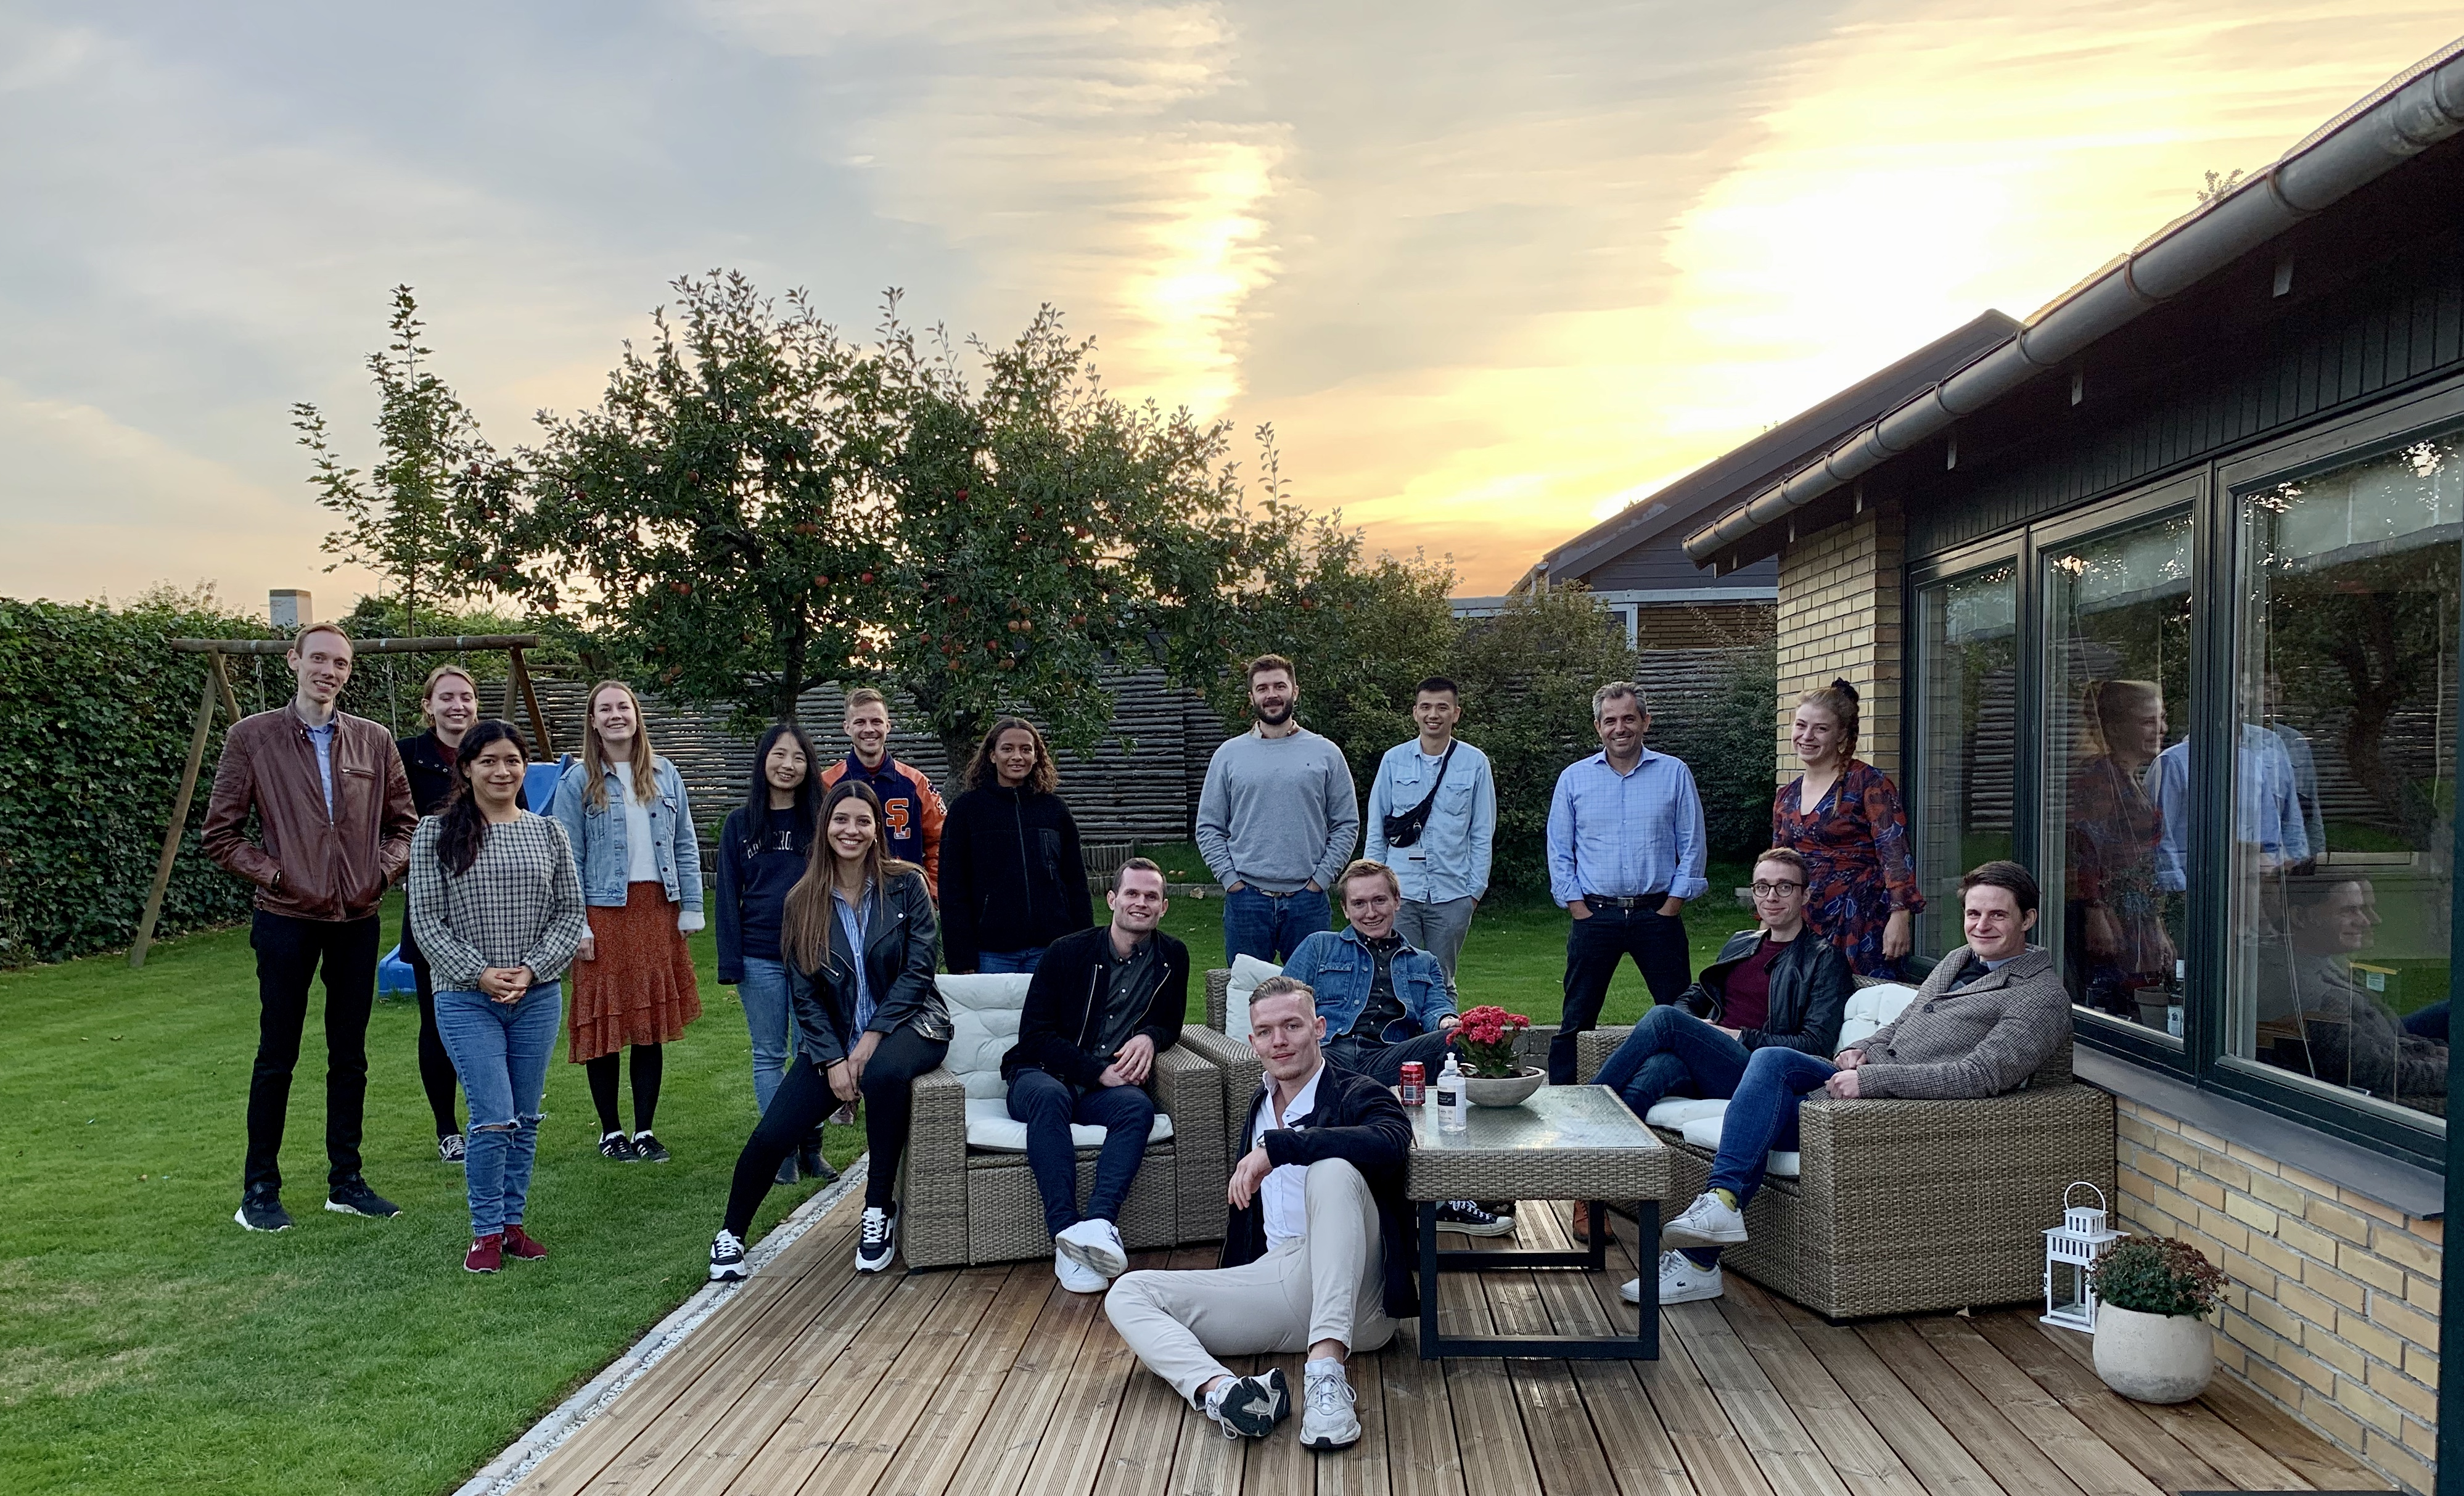 Annual BBQ, celebrating another year of great work!